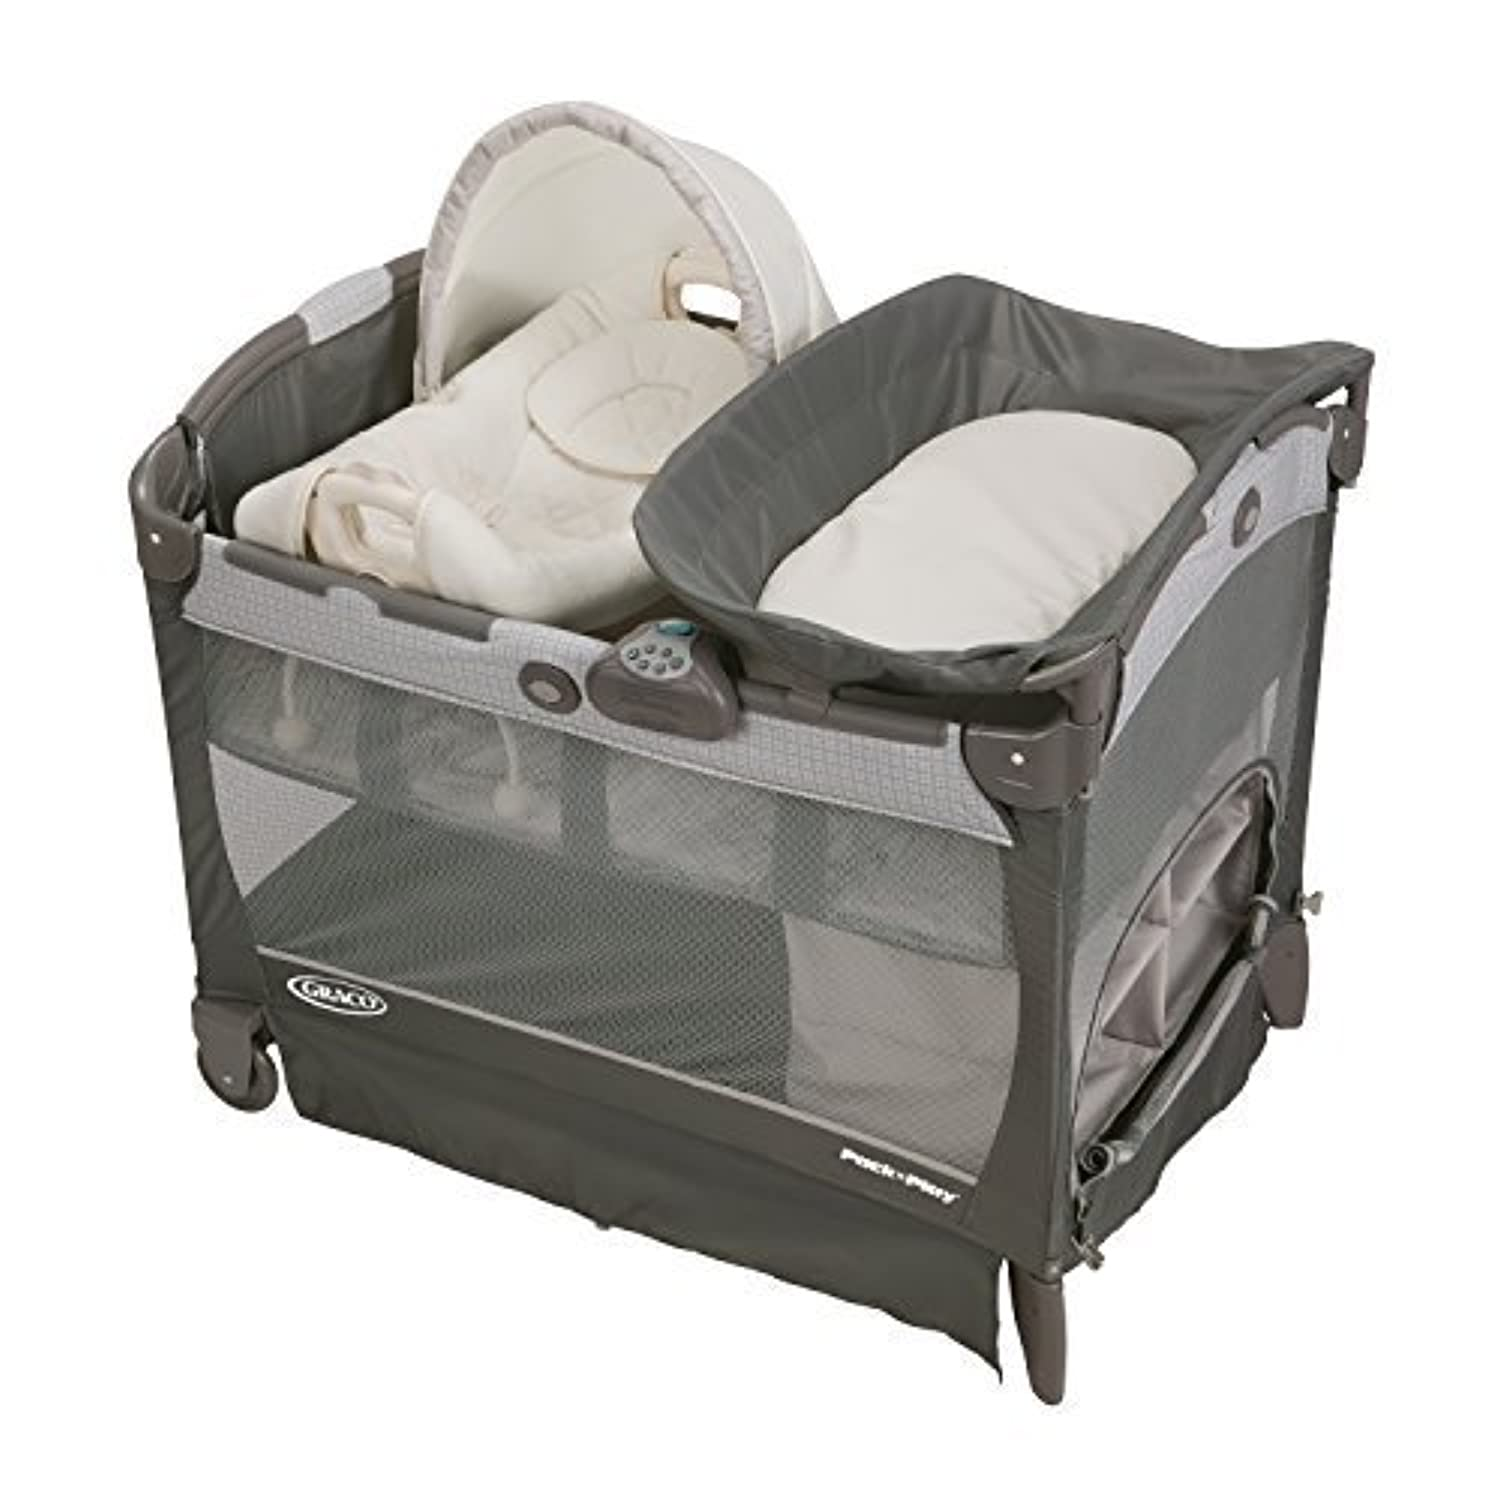 Graco Pack 'N Play Playard with Cuddle Cove Removable Seat Glacier by Graco [並行輸入品]